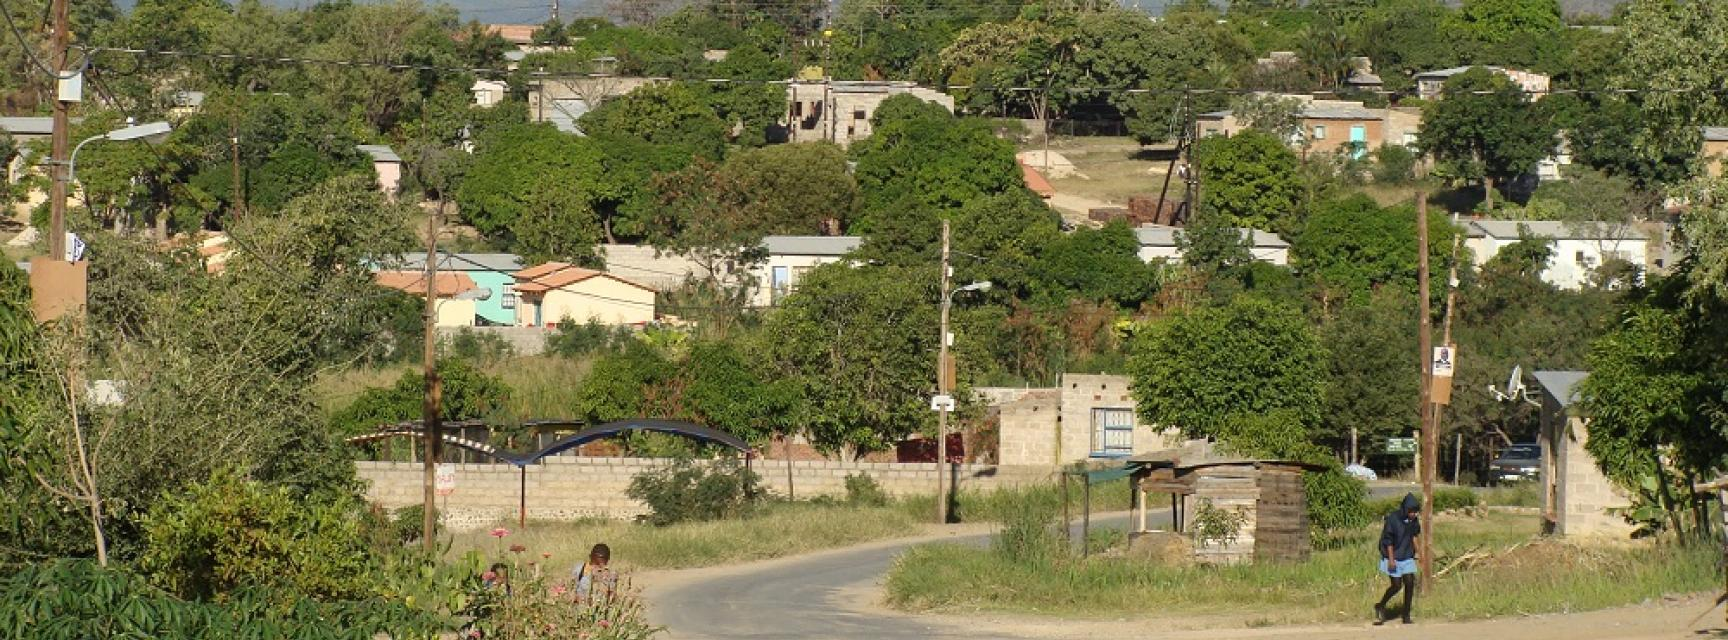 A scene of a rural south african town with overhead power cables and mountains in the background. A road runs through the middle.